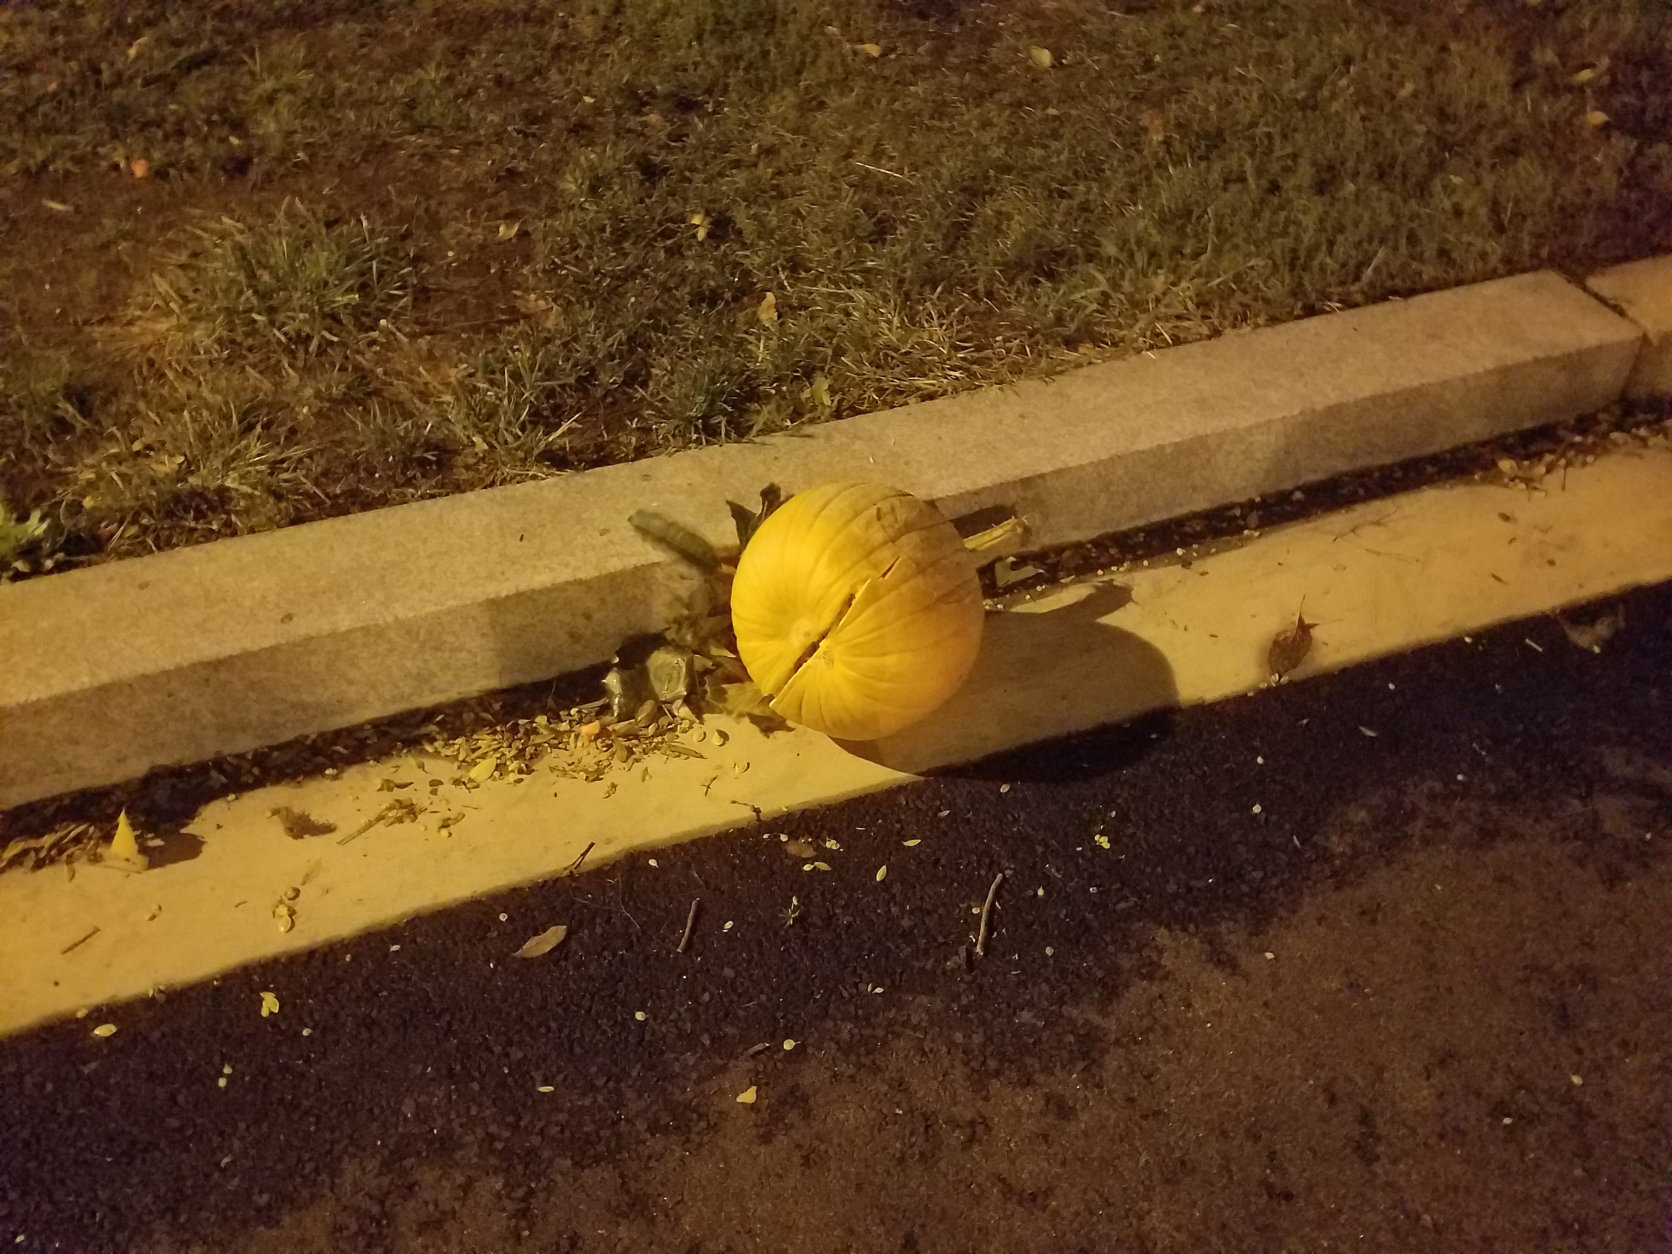 The winds the night of Oct. 11 in Georgetown smashed at least one pumpkin. (WTOP/Will Vitka)